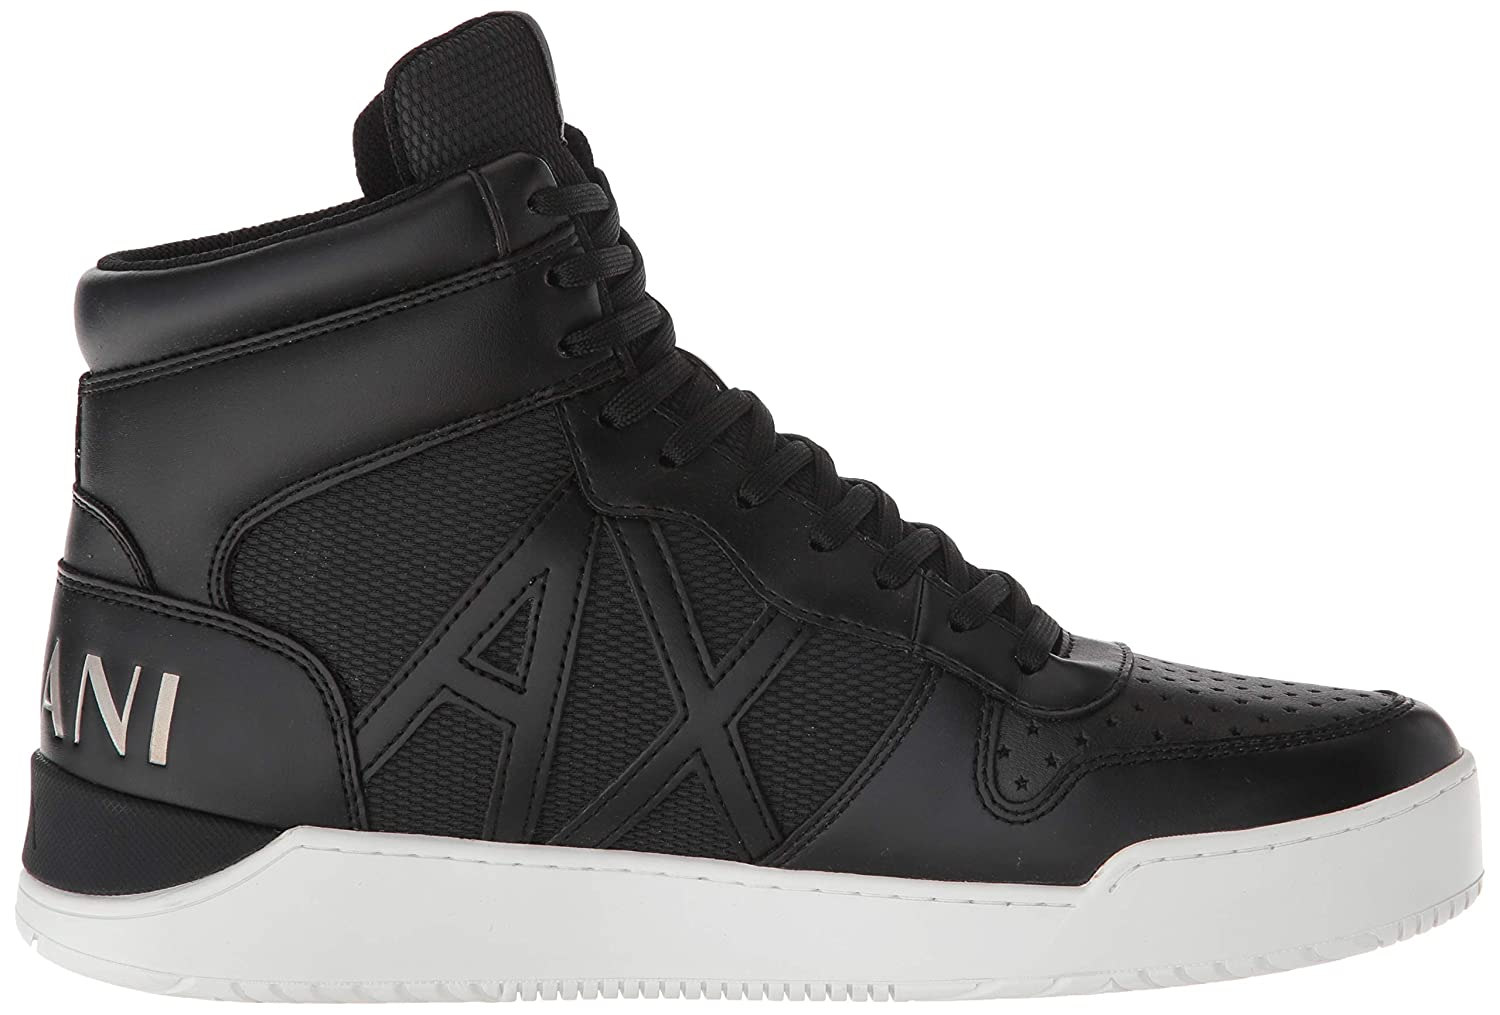 Amazon.com: A|X Armani Exchange Mens High Top Lace Up Sneaker, Black 00002, 7 M US: Shoes